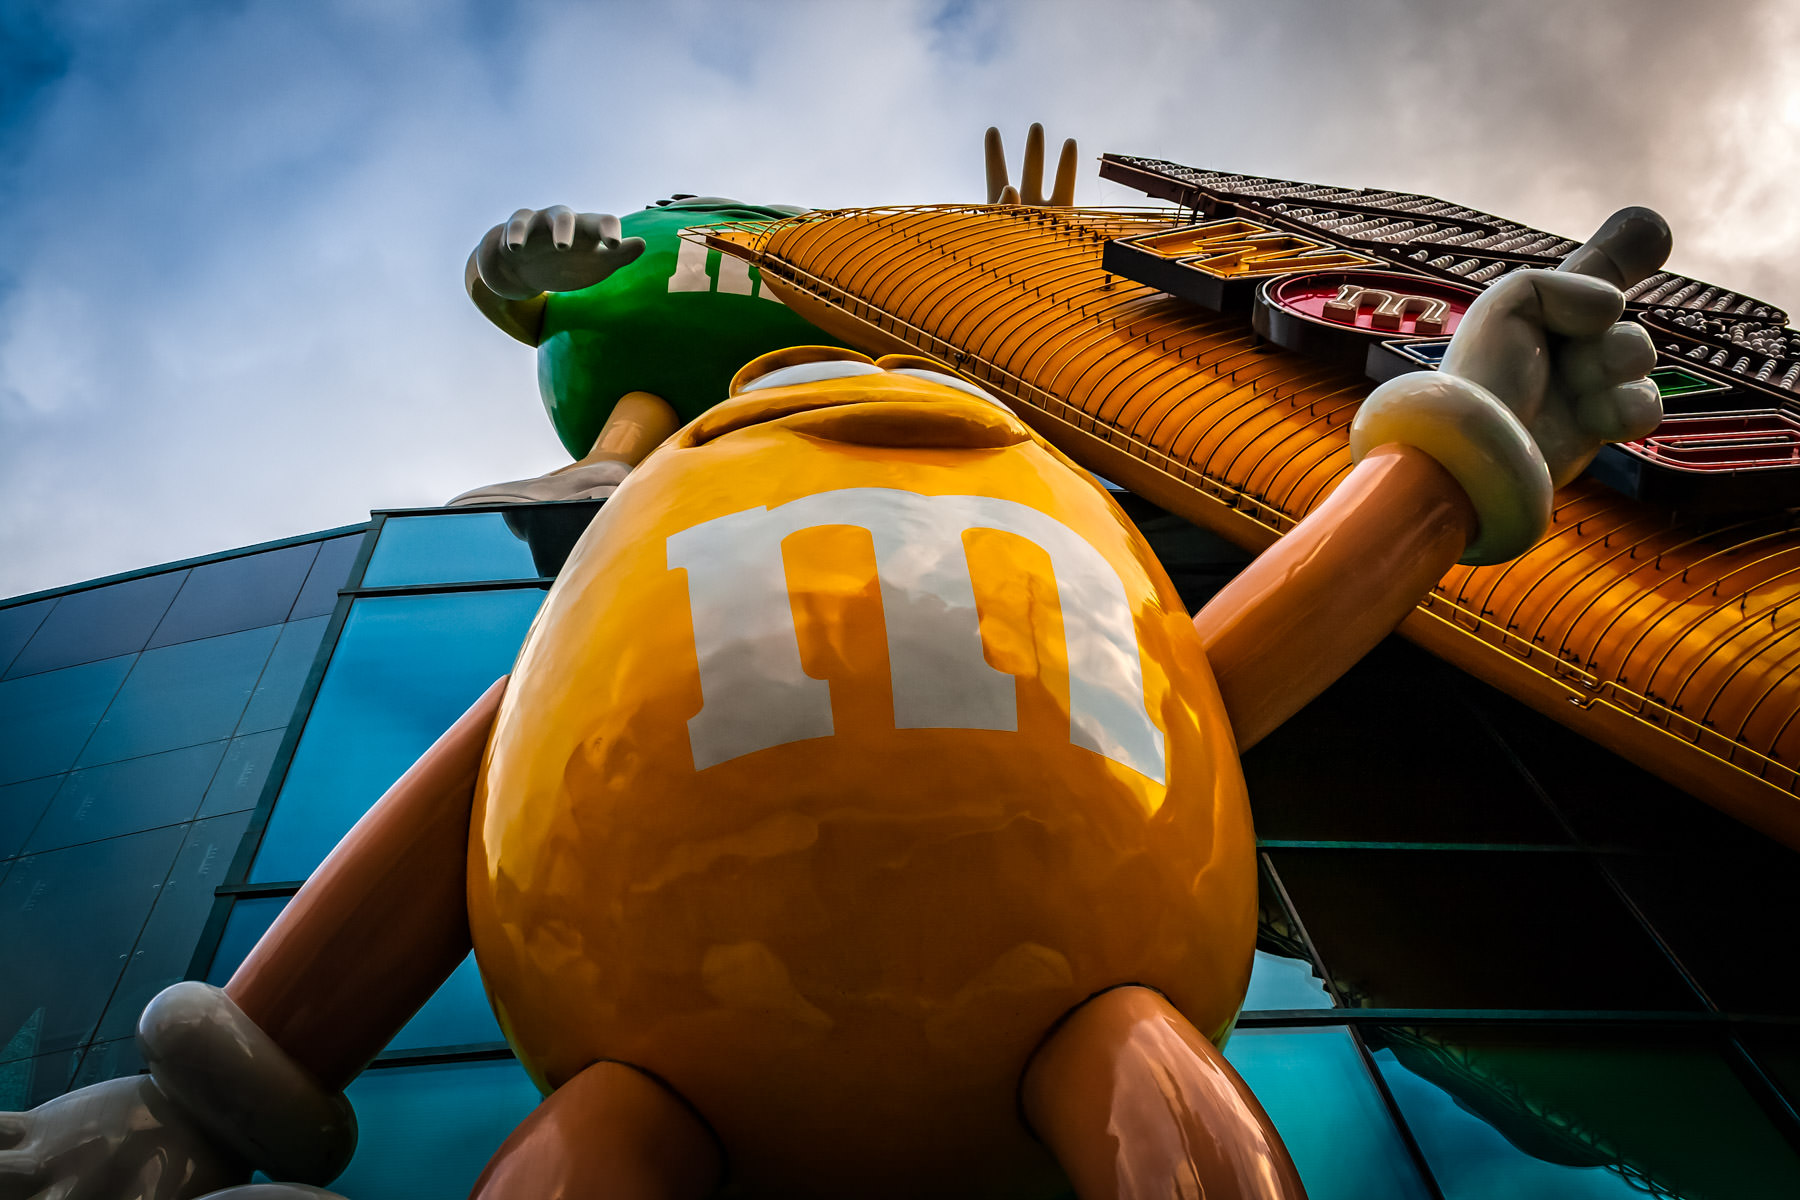 A fibreglass anthropomorphic M&M candy-shaped sign at M&M's World, Las Vegas.